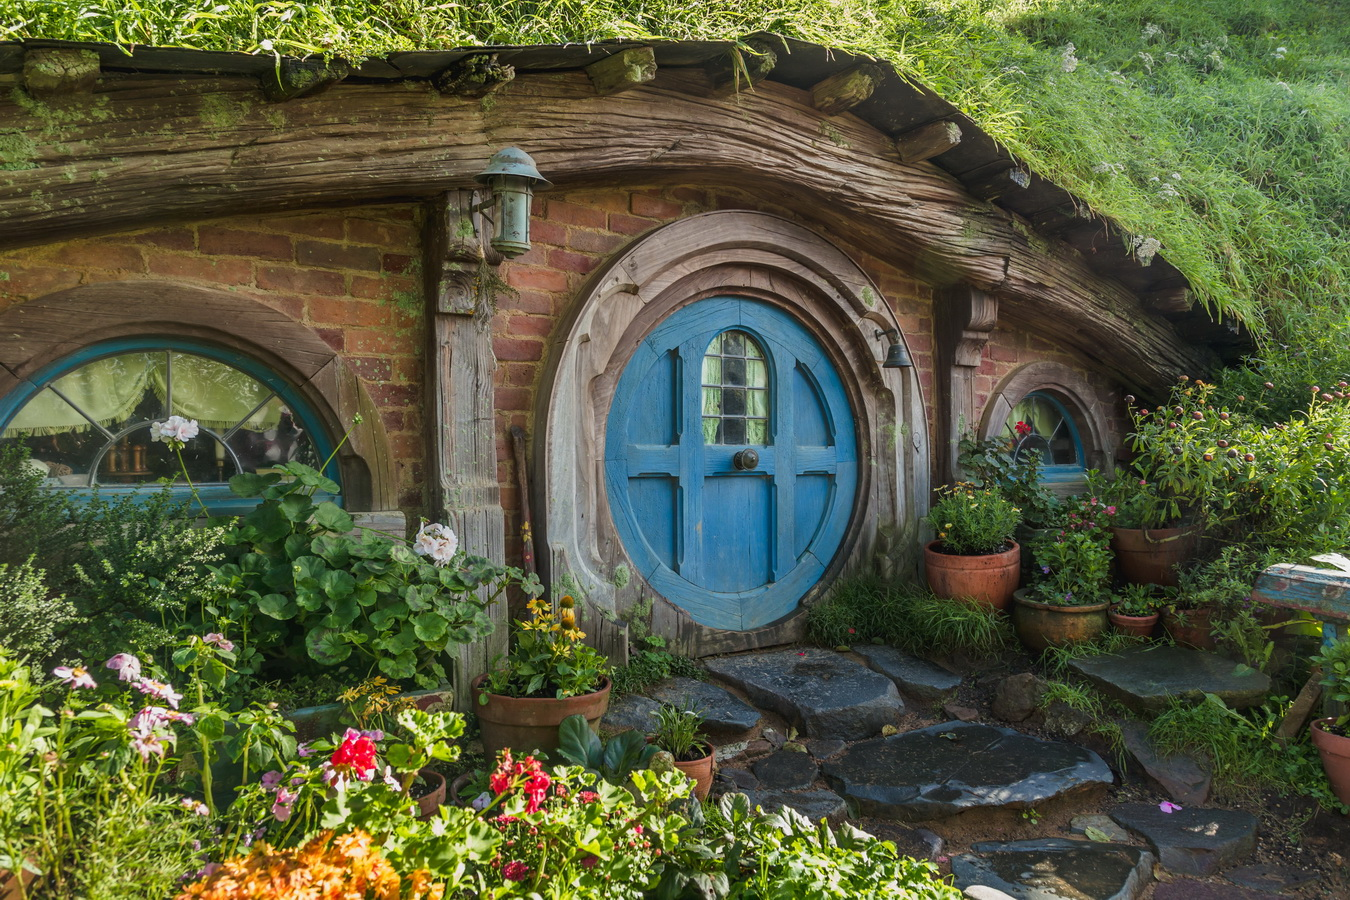 blue door, underground house,The Hobbiton, The Shire,Хоббитшир, Удел, Хоббитания, Заселье, Край,Matamata, North Island ,New Zealand